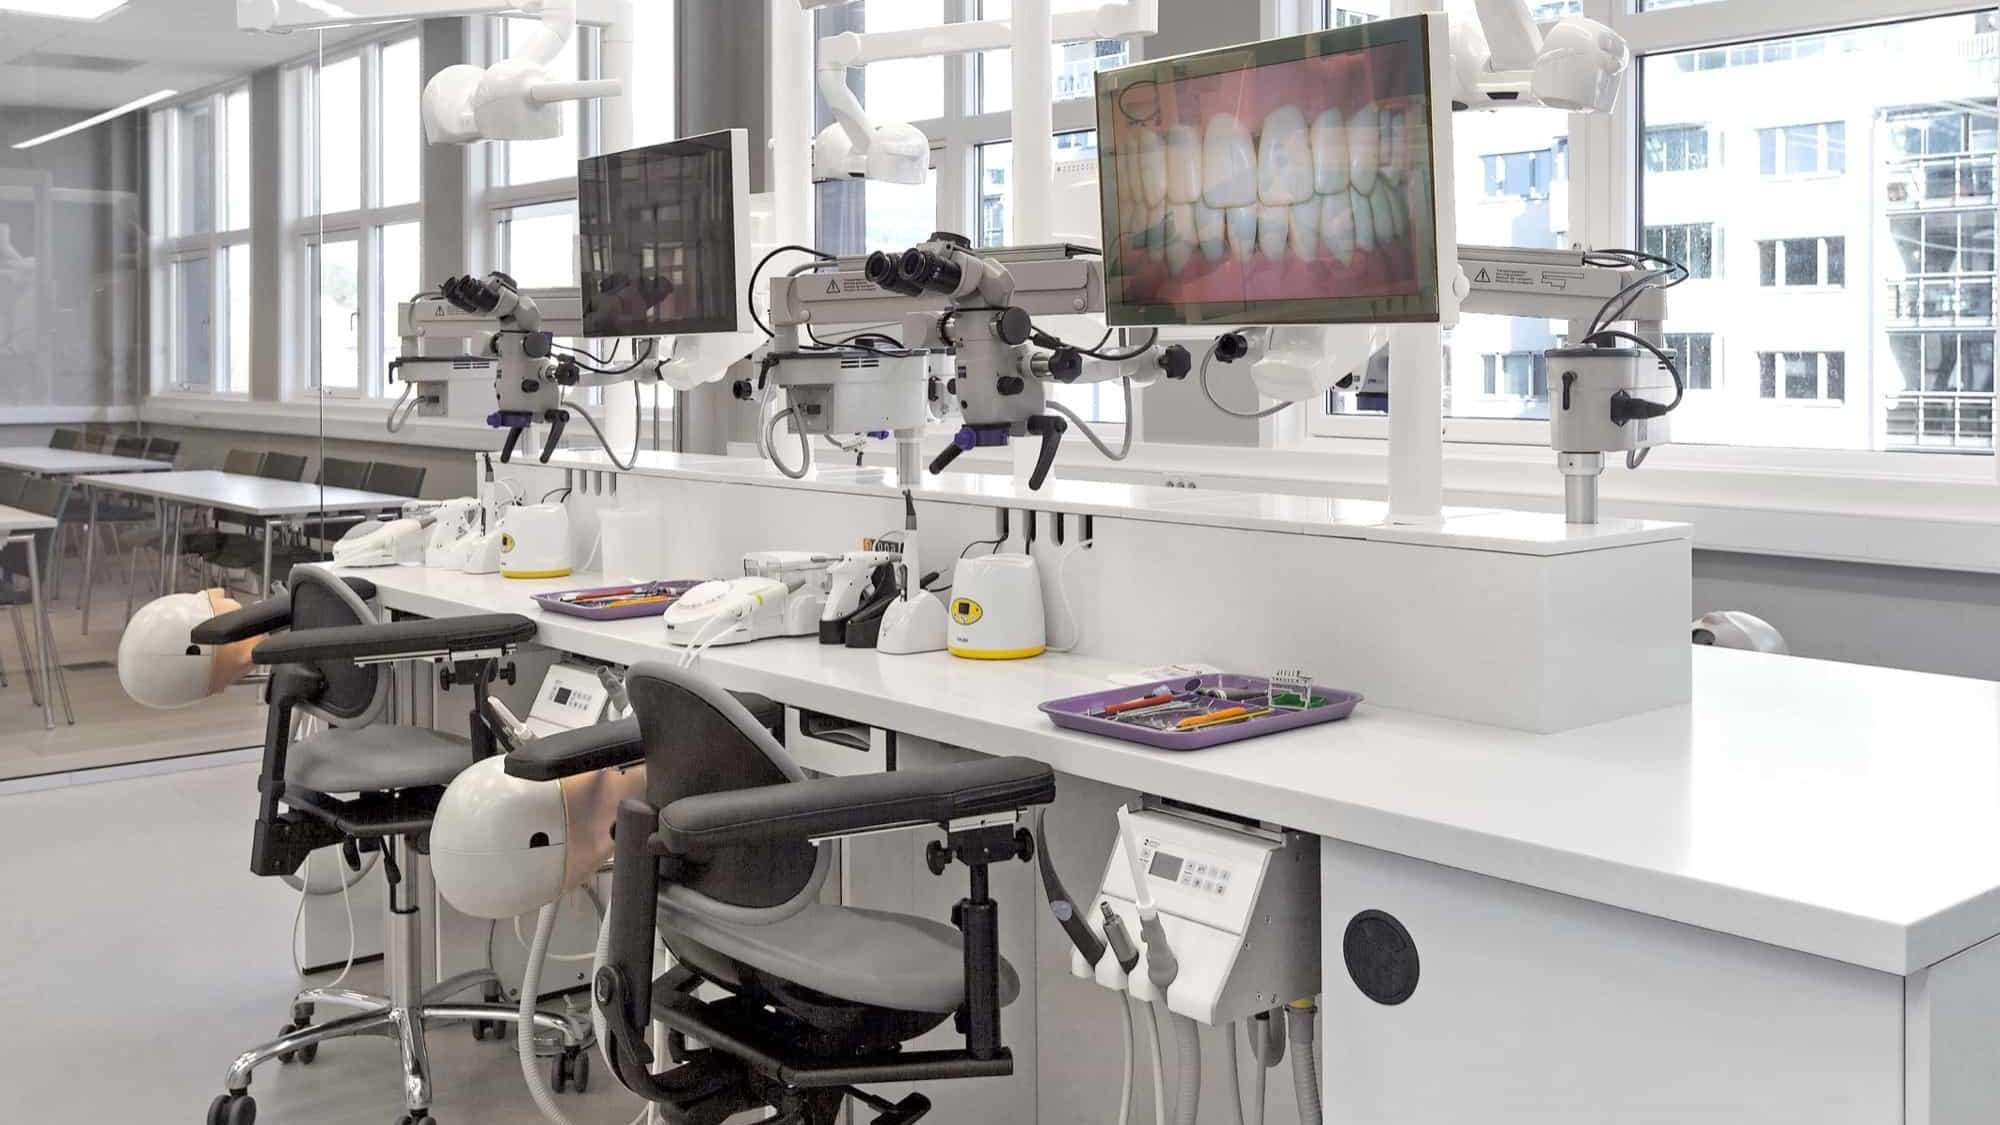 WORKSHOP ROOM - SIRONA/ZEISS/SATELEC UNITS